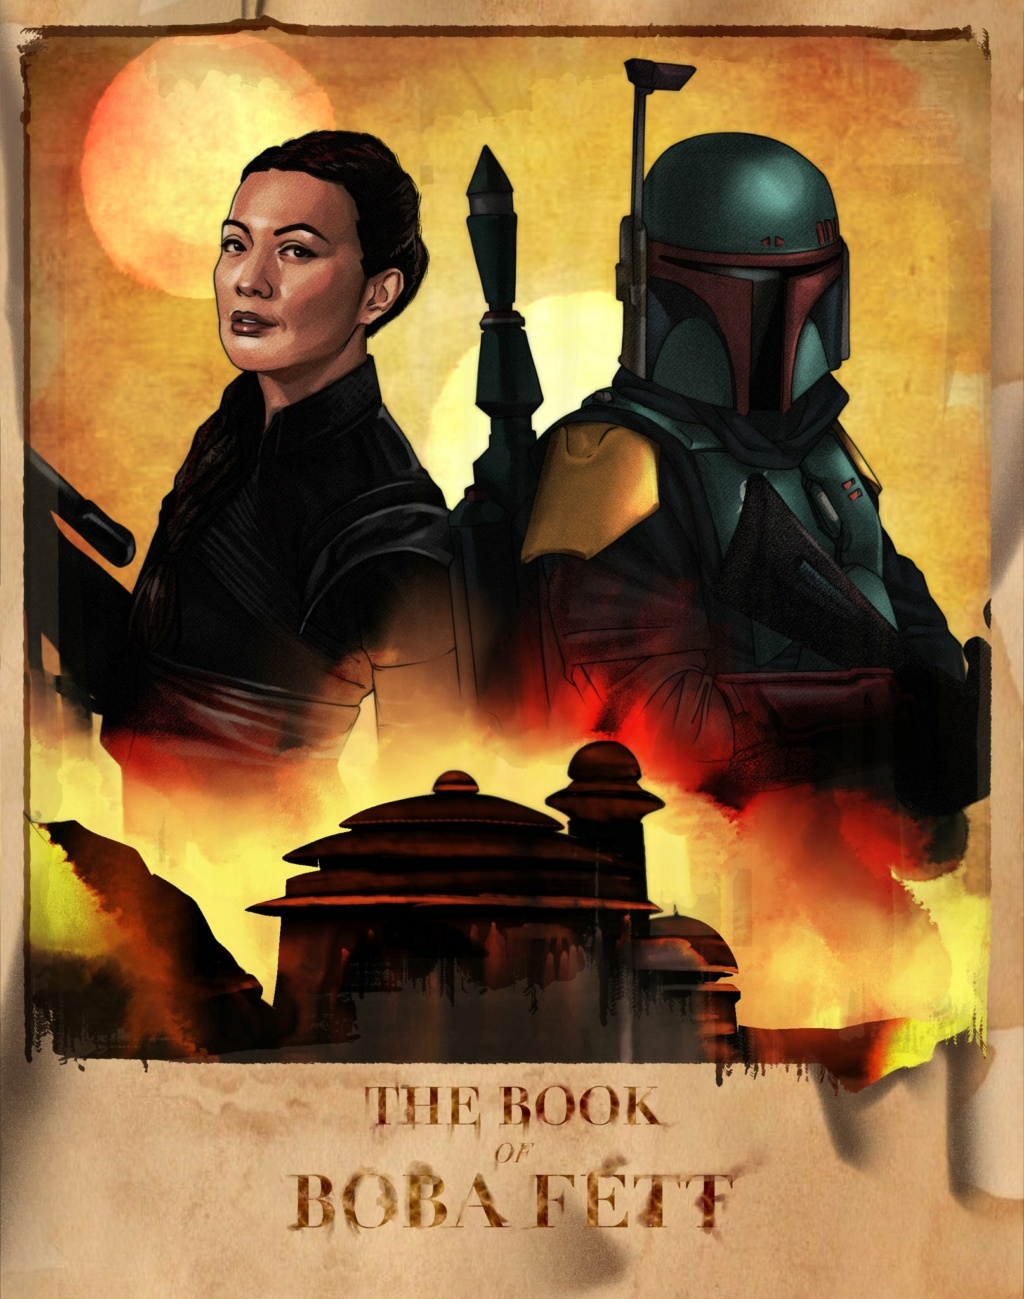 Star Wars The Book of Boba Fett : Fan Art Poste116